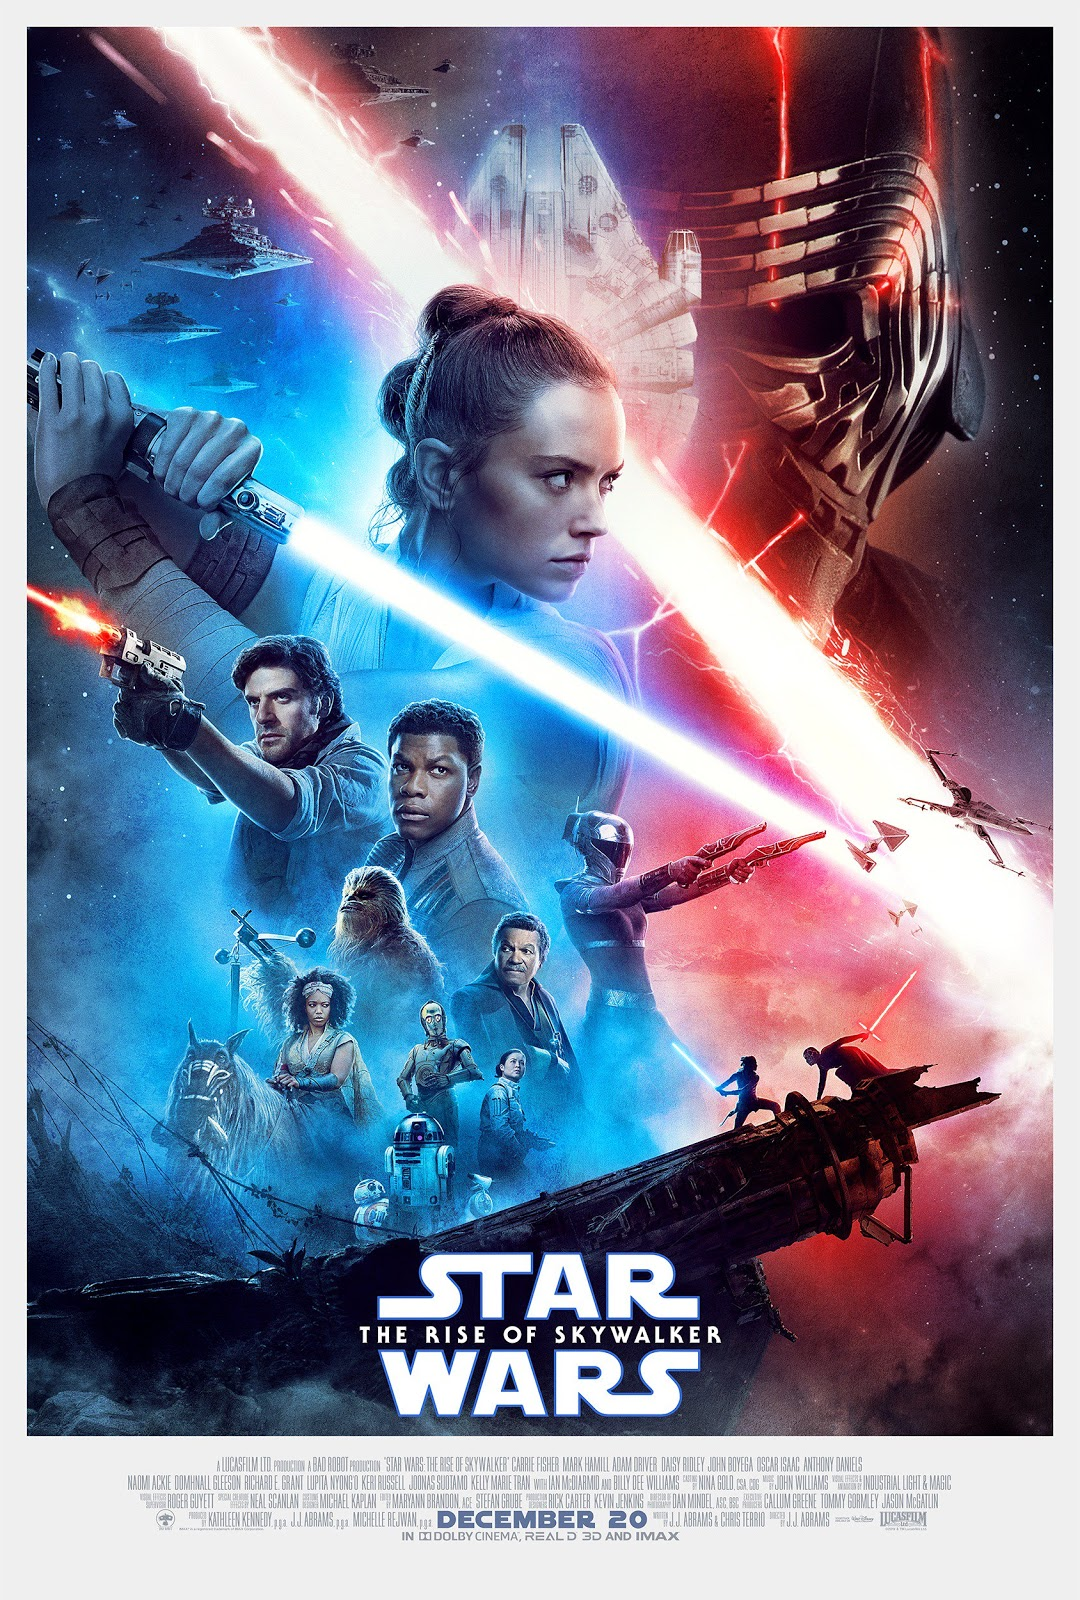 Star Wars The Rise of Skywalker theatrical poster